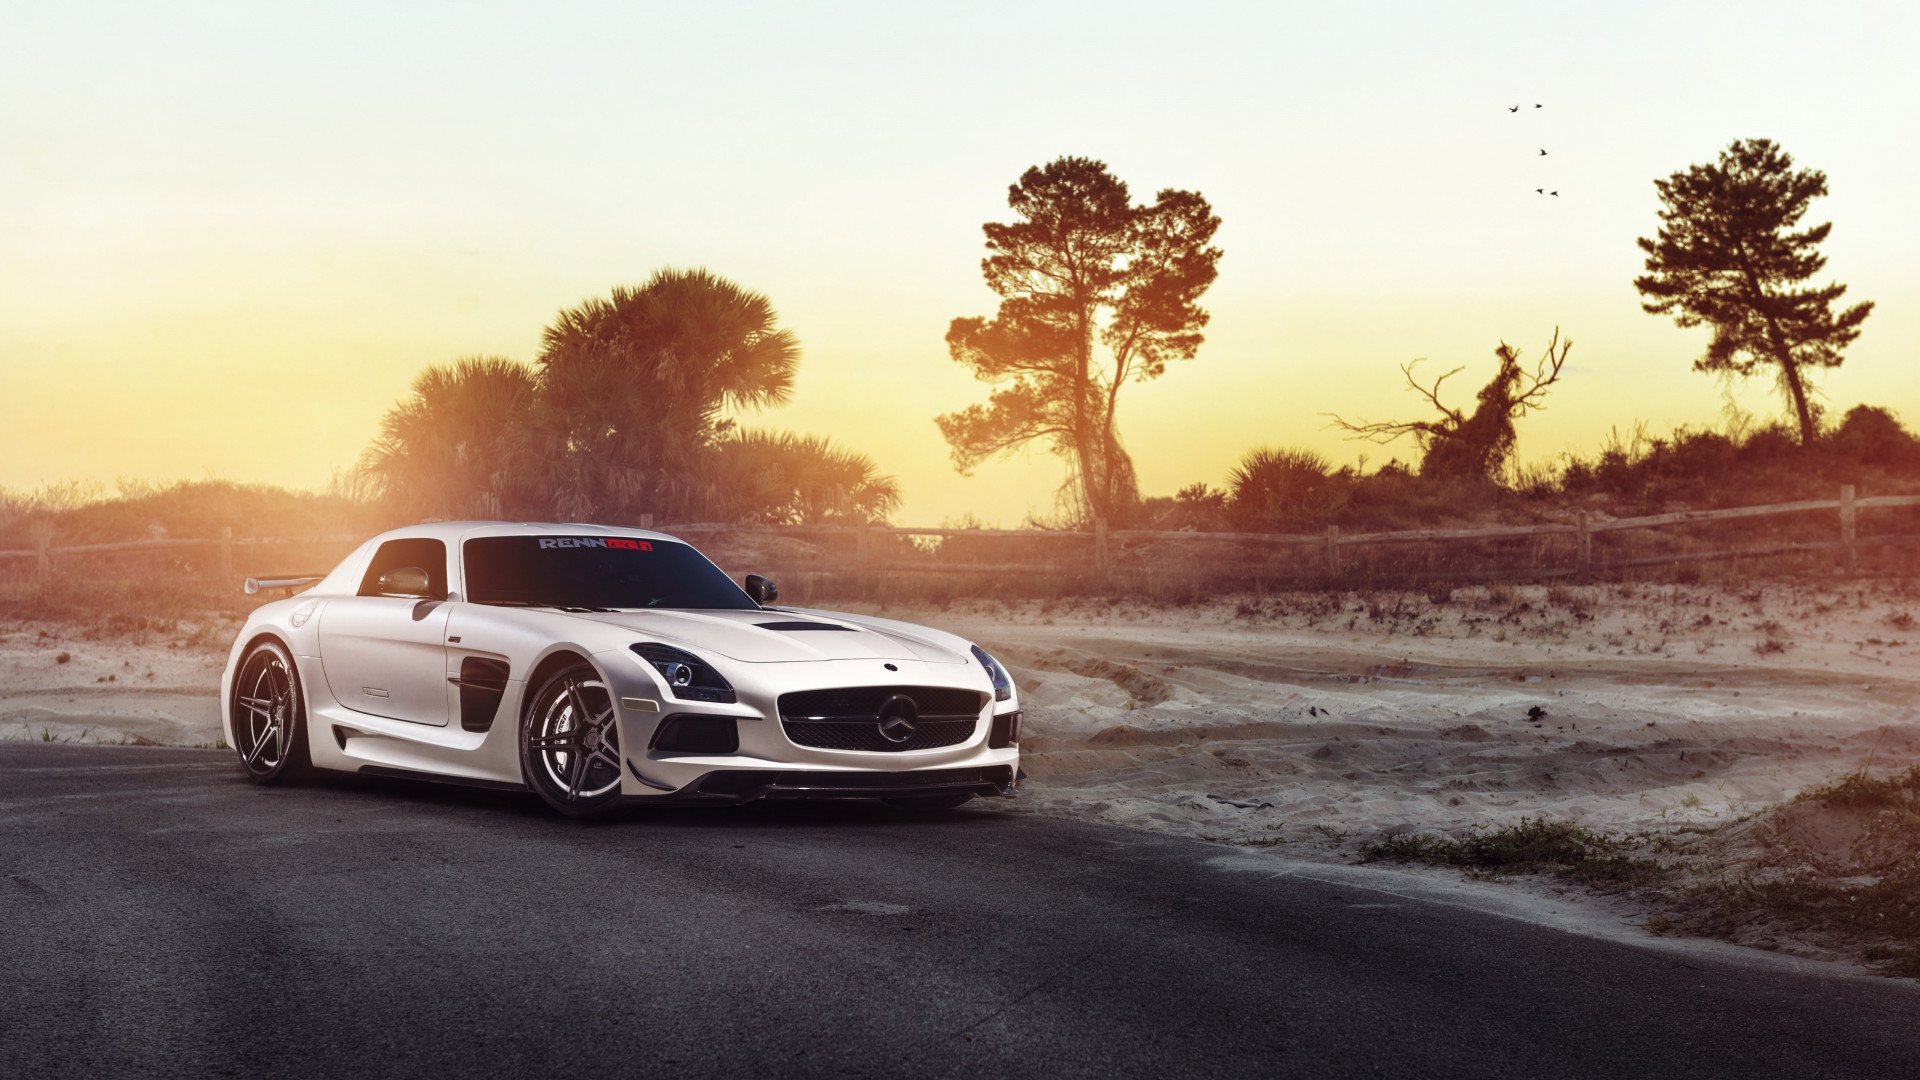 Mercedes SLS wallpaper 1920x1080